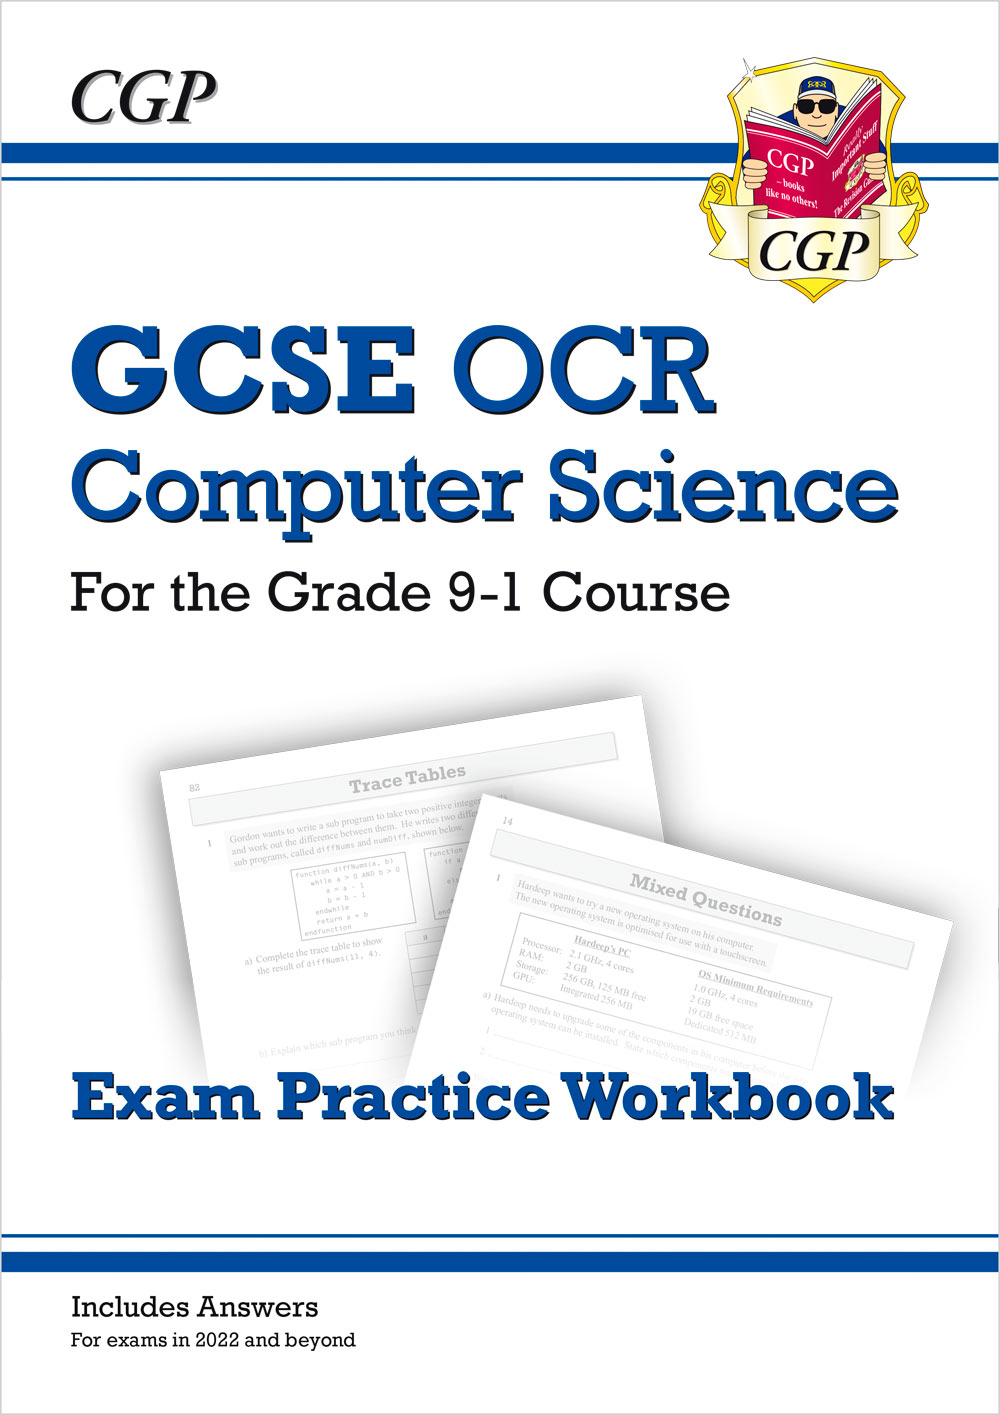 COQ42 - New GCSE Computer Science OCR Exam Practice Workbook - for exams in 2022 and beyond